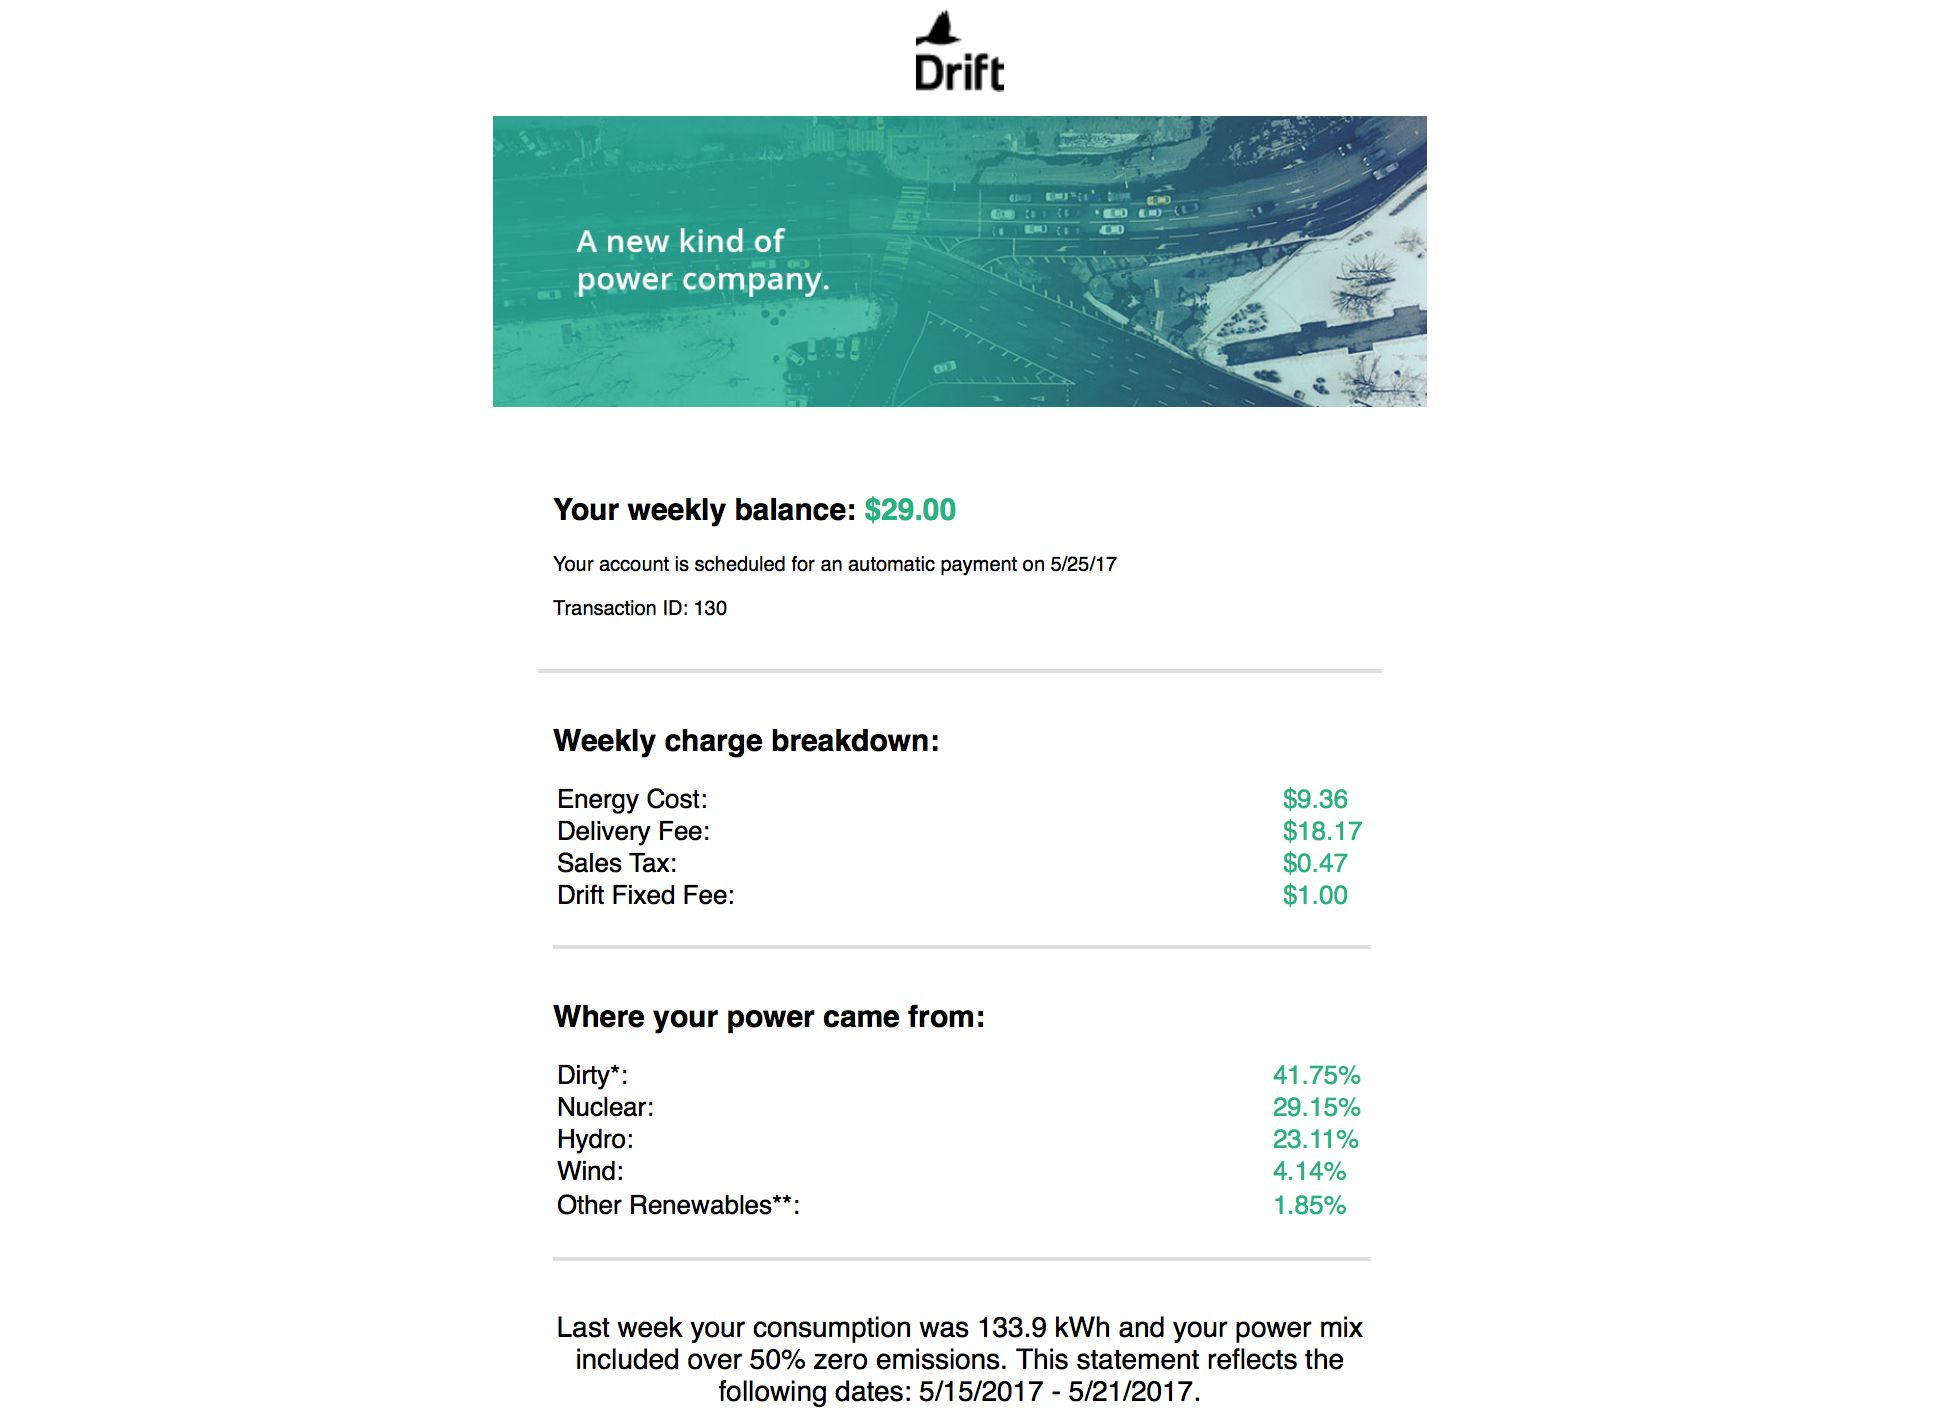 Drift Is a New Startup Applying Peer-to-Peer Trading to